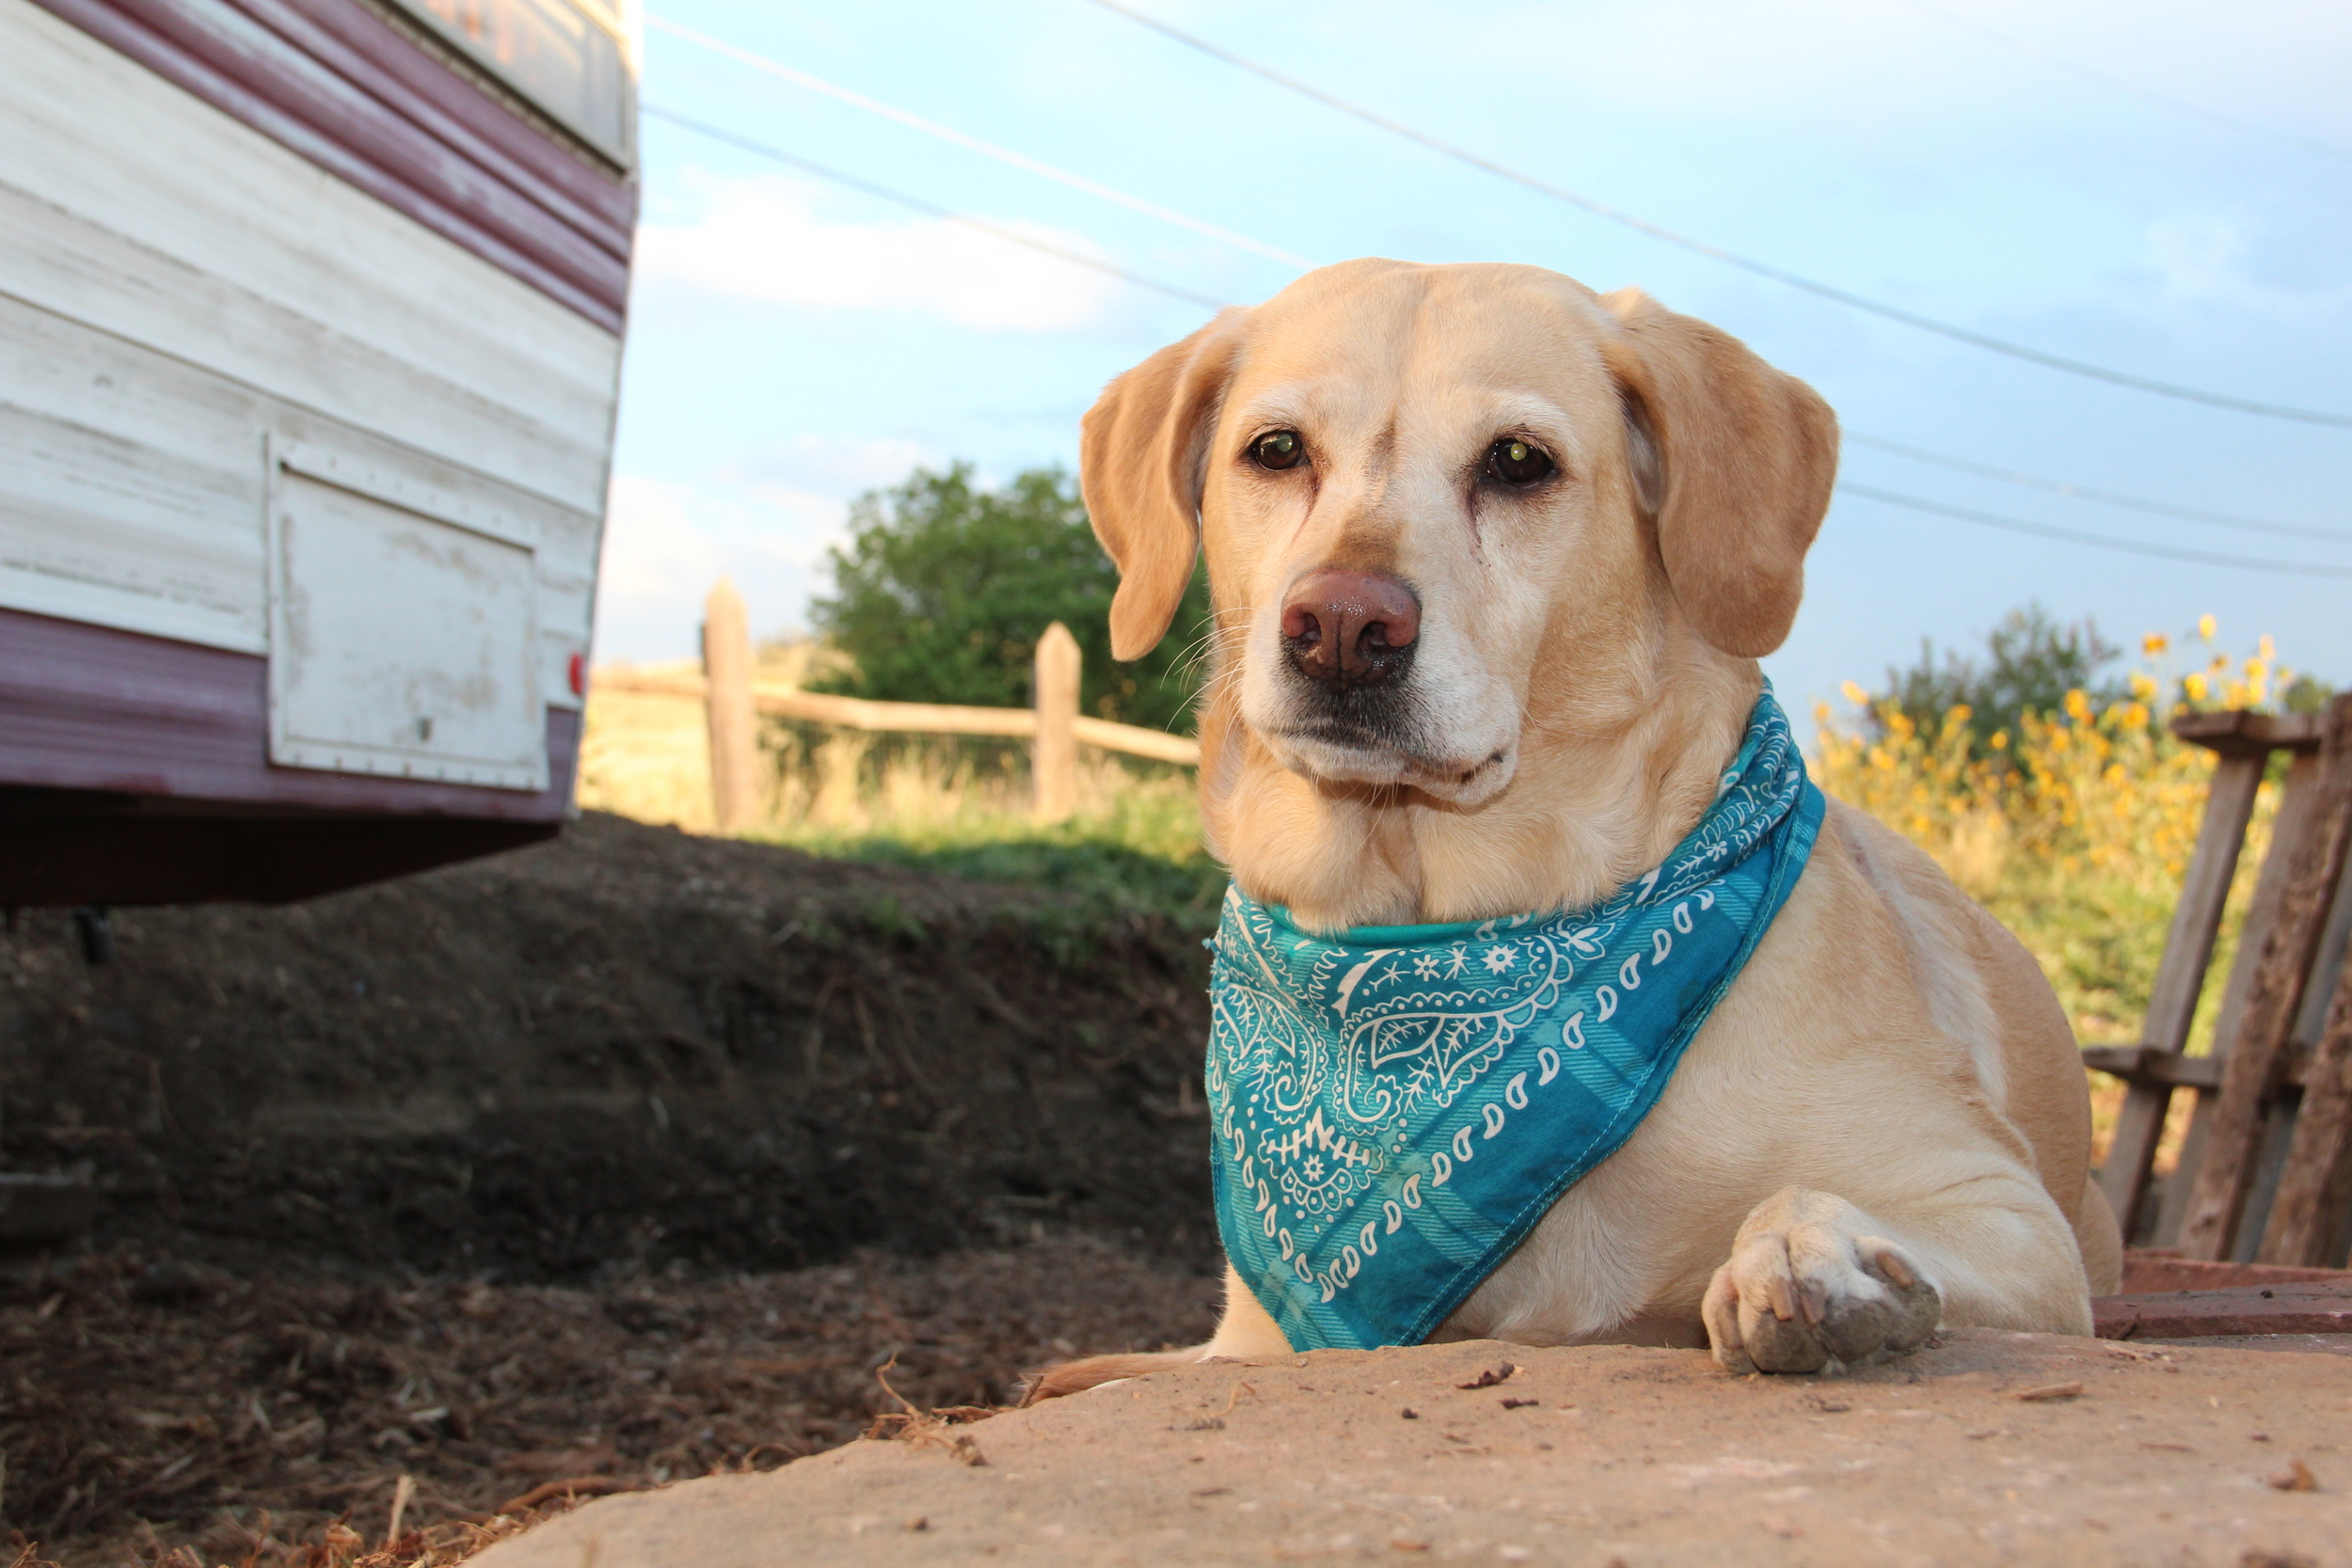 The new stones are the perfect prop for any pooch photo shoot.